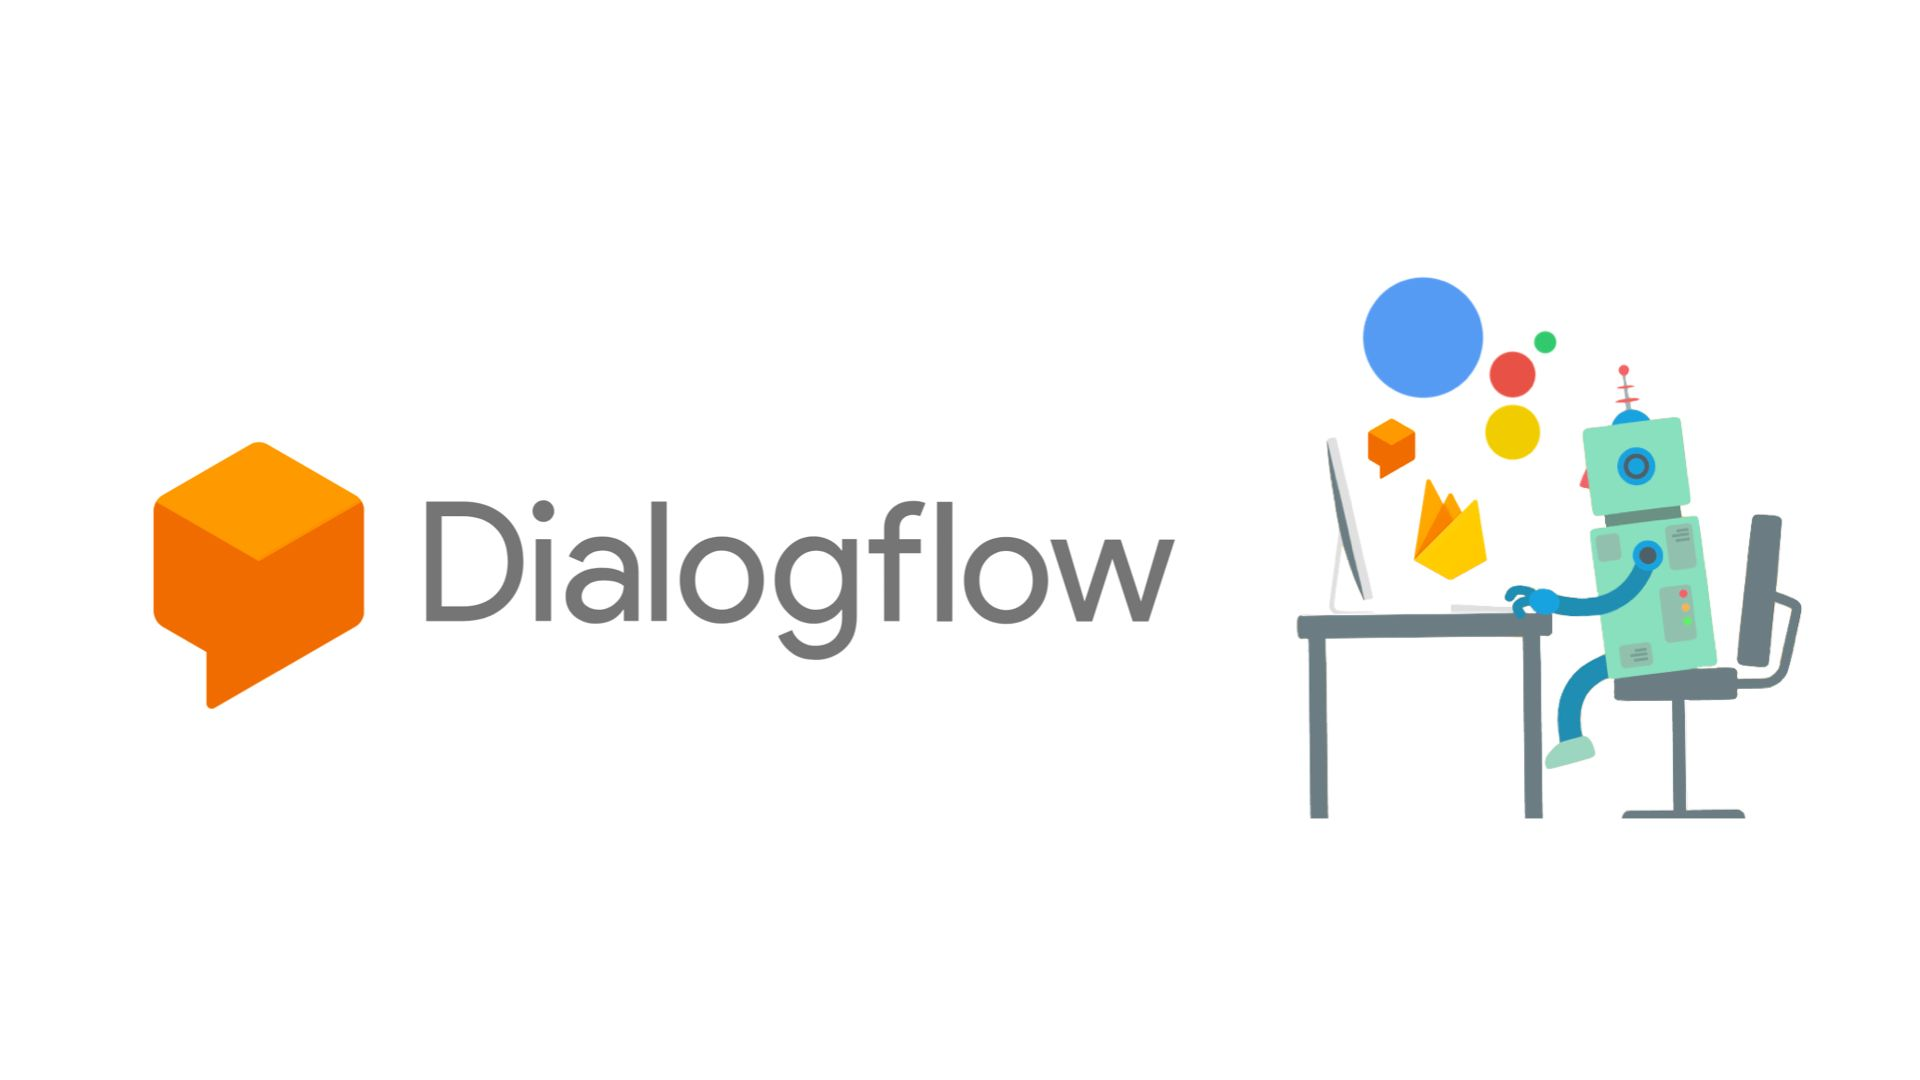 6 Best Dialogflow Courses & Tutorials to Learn Online